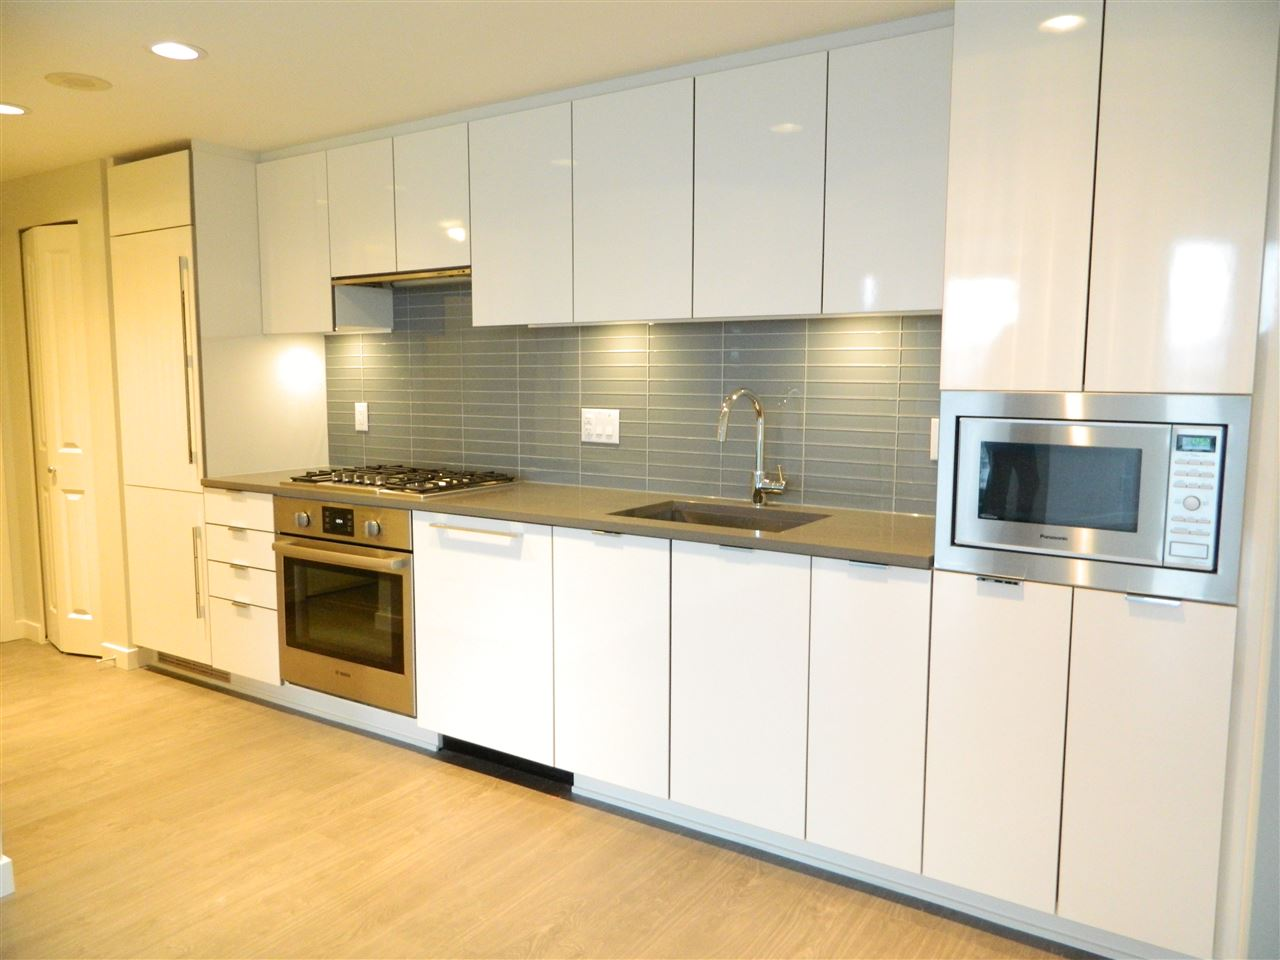 "Main Photo: A1101 8333 SWEET Avenue in Richmond: West Cambie Condo for sale in ""Avanti"" : MLS(r) # R2172098"